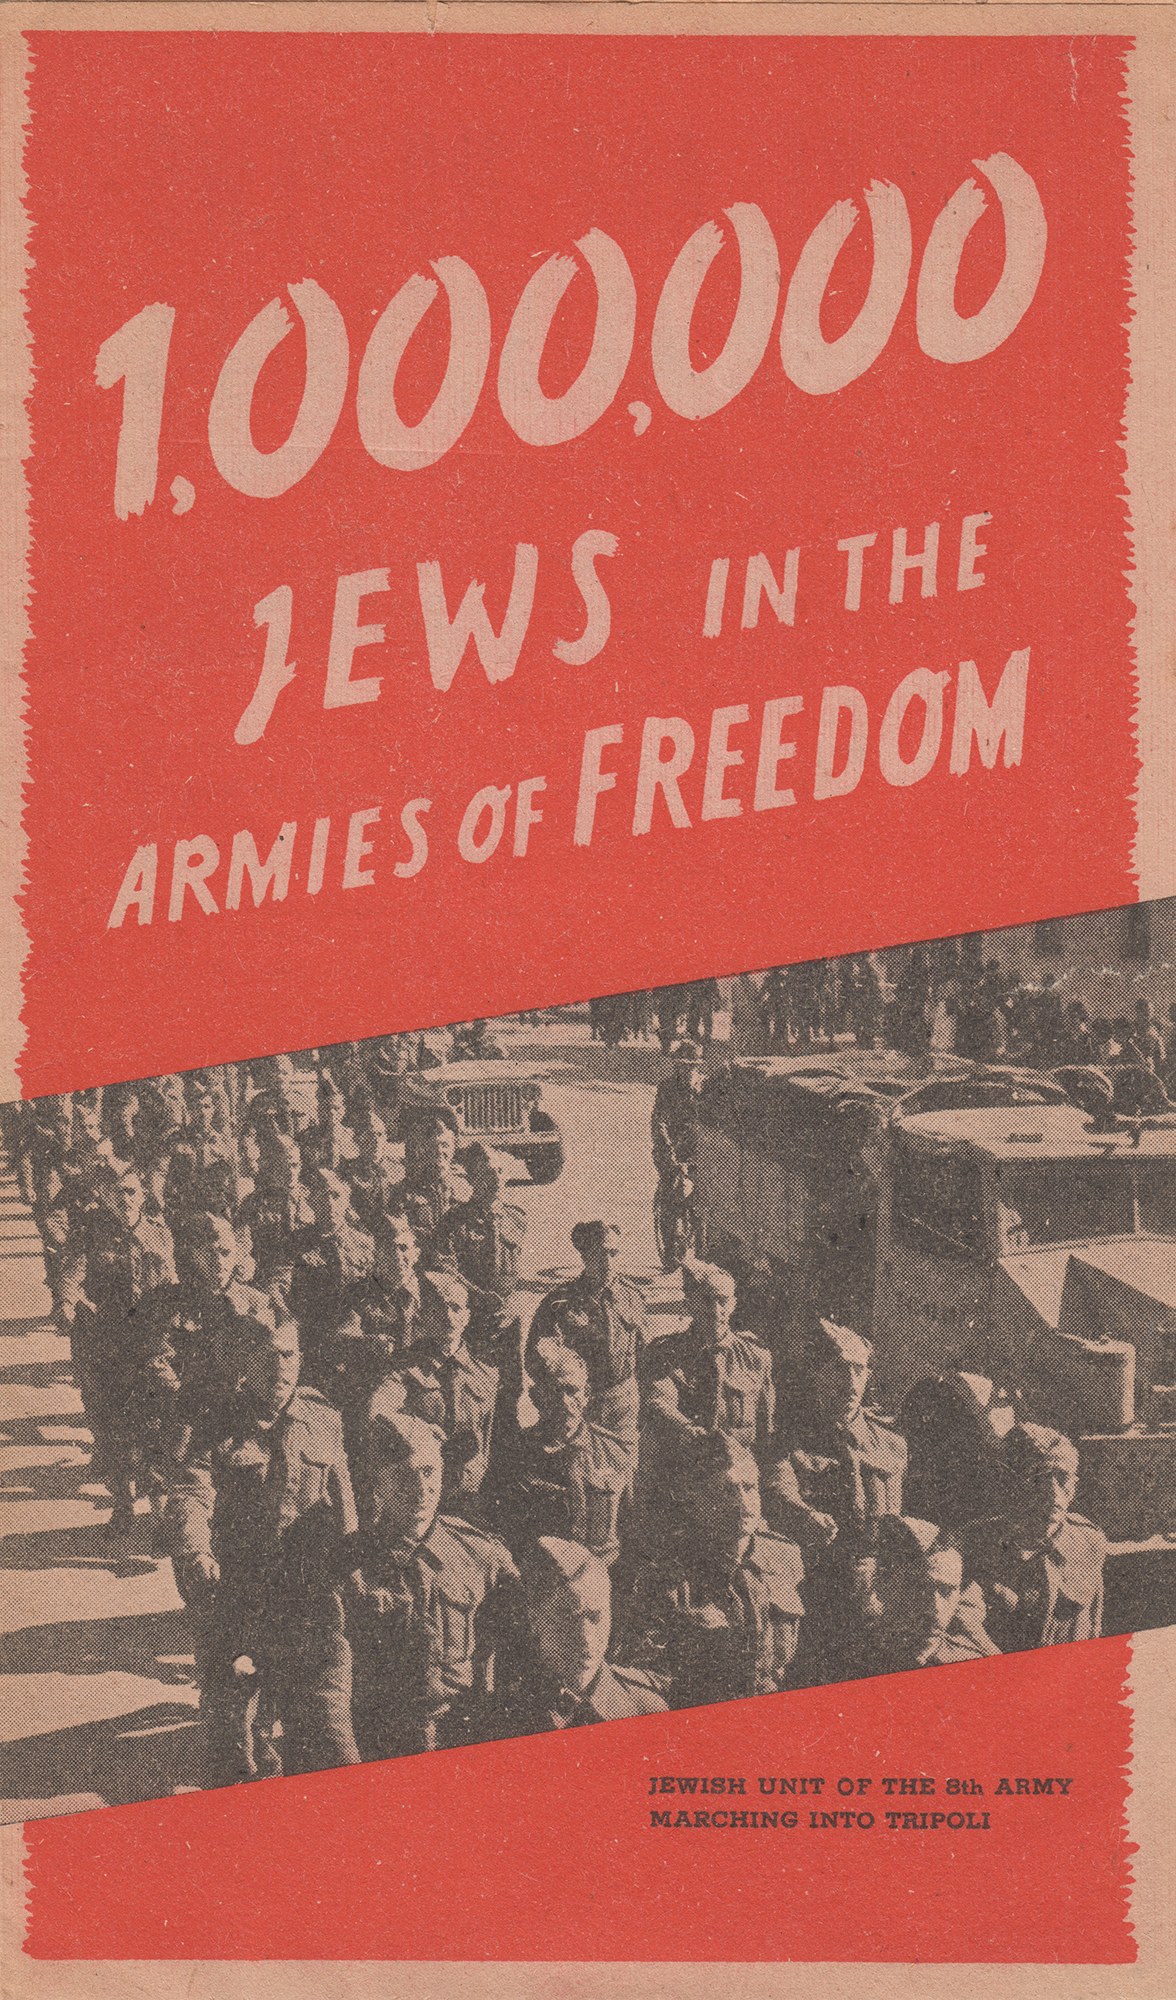 """Pamphlet titled """"1,000,000. Jews in the Armies of Freedom."""" ca. 1944"""